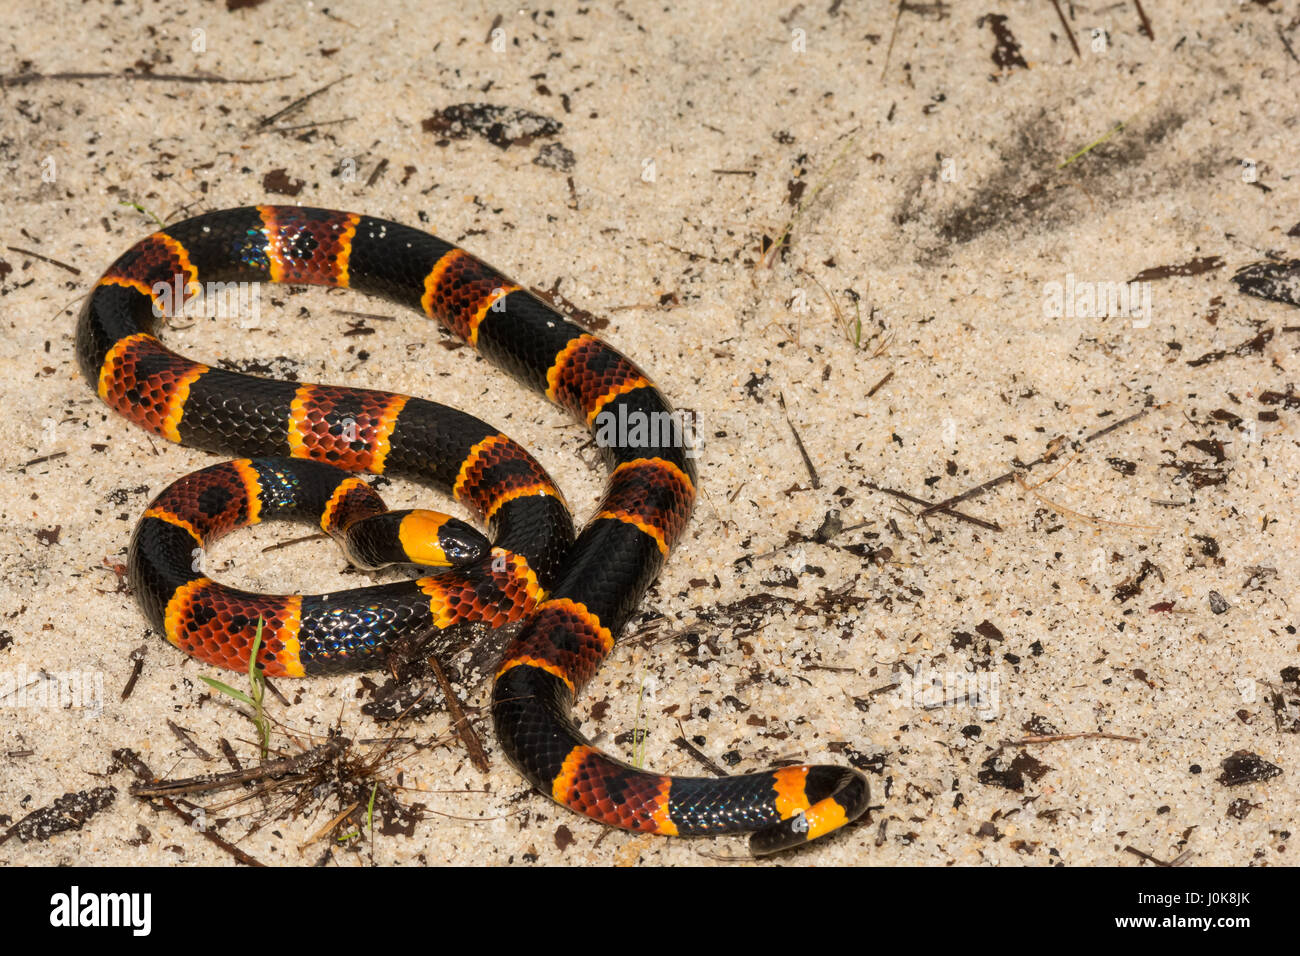 A close up of Eastern Coral Snake at Apalachicola National Forest in Florida. - Stock Image